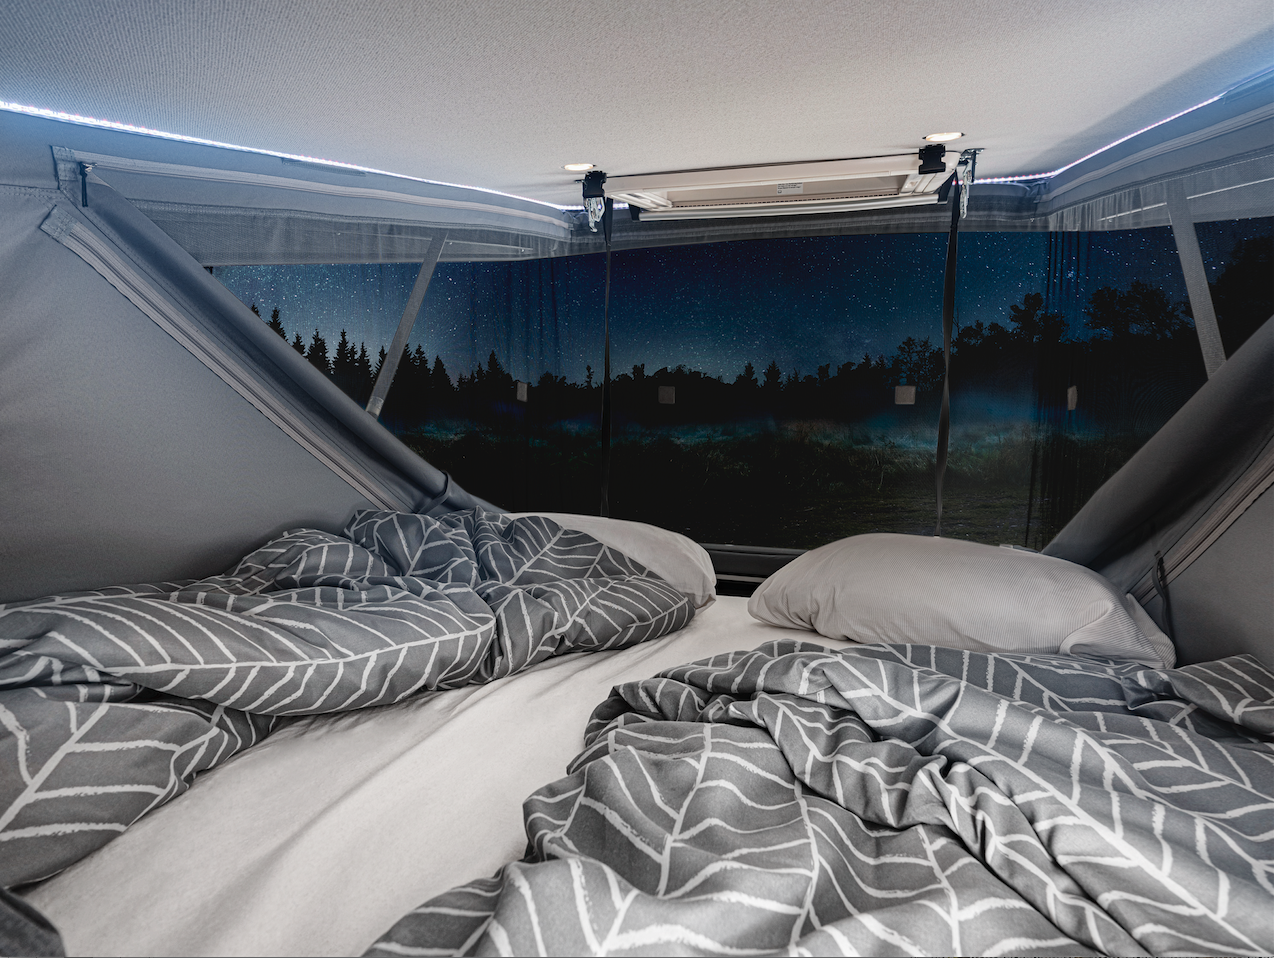 Enjoy a panoramic view of the star-filled night sky